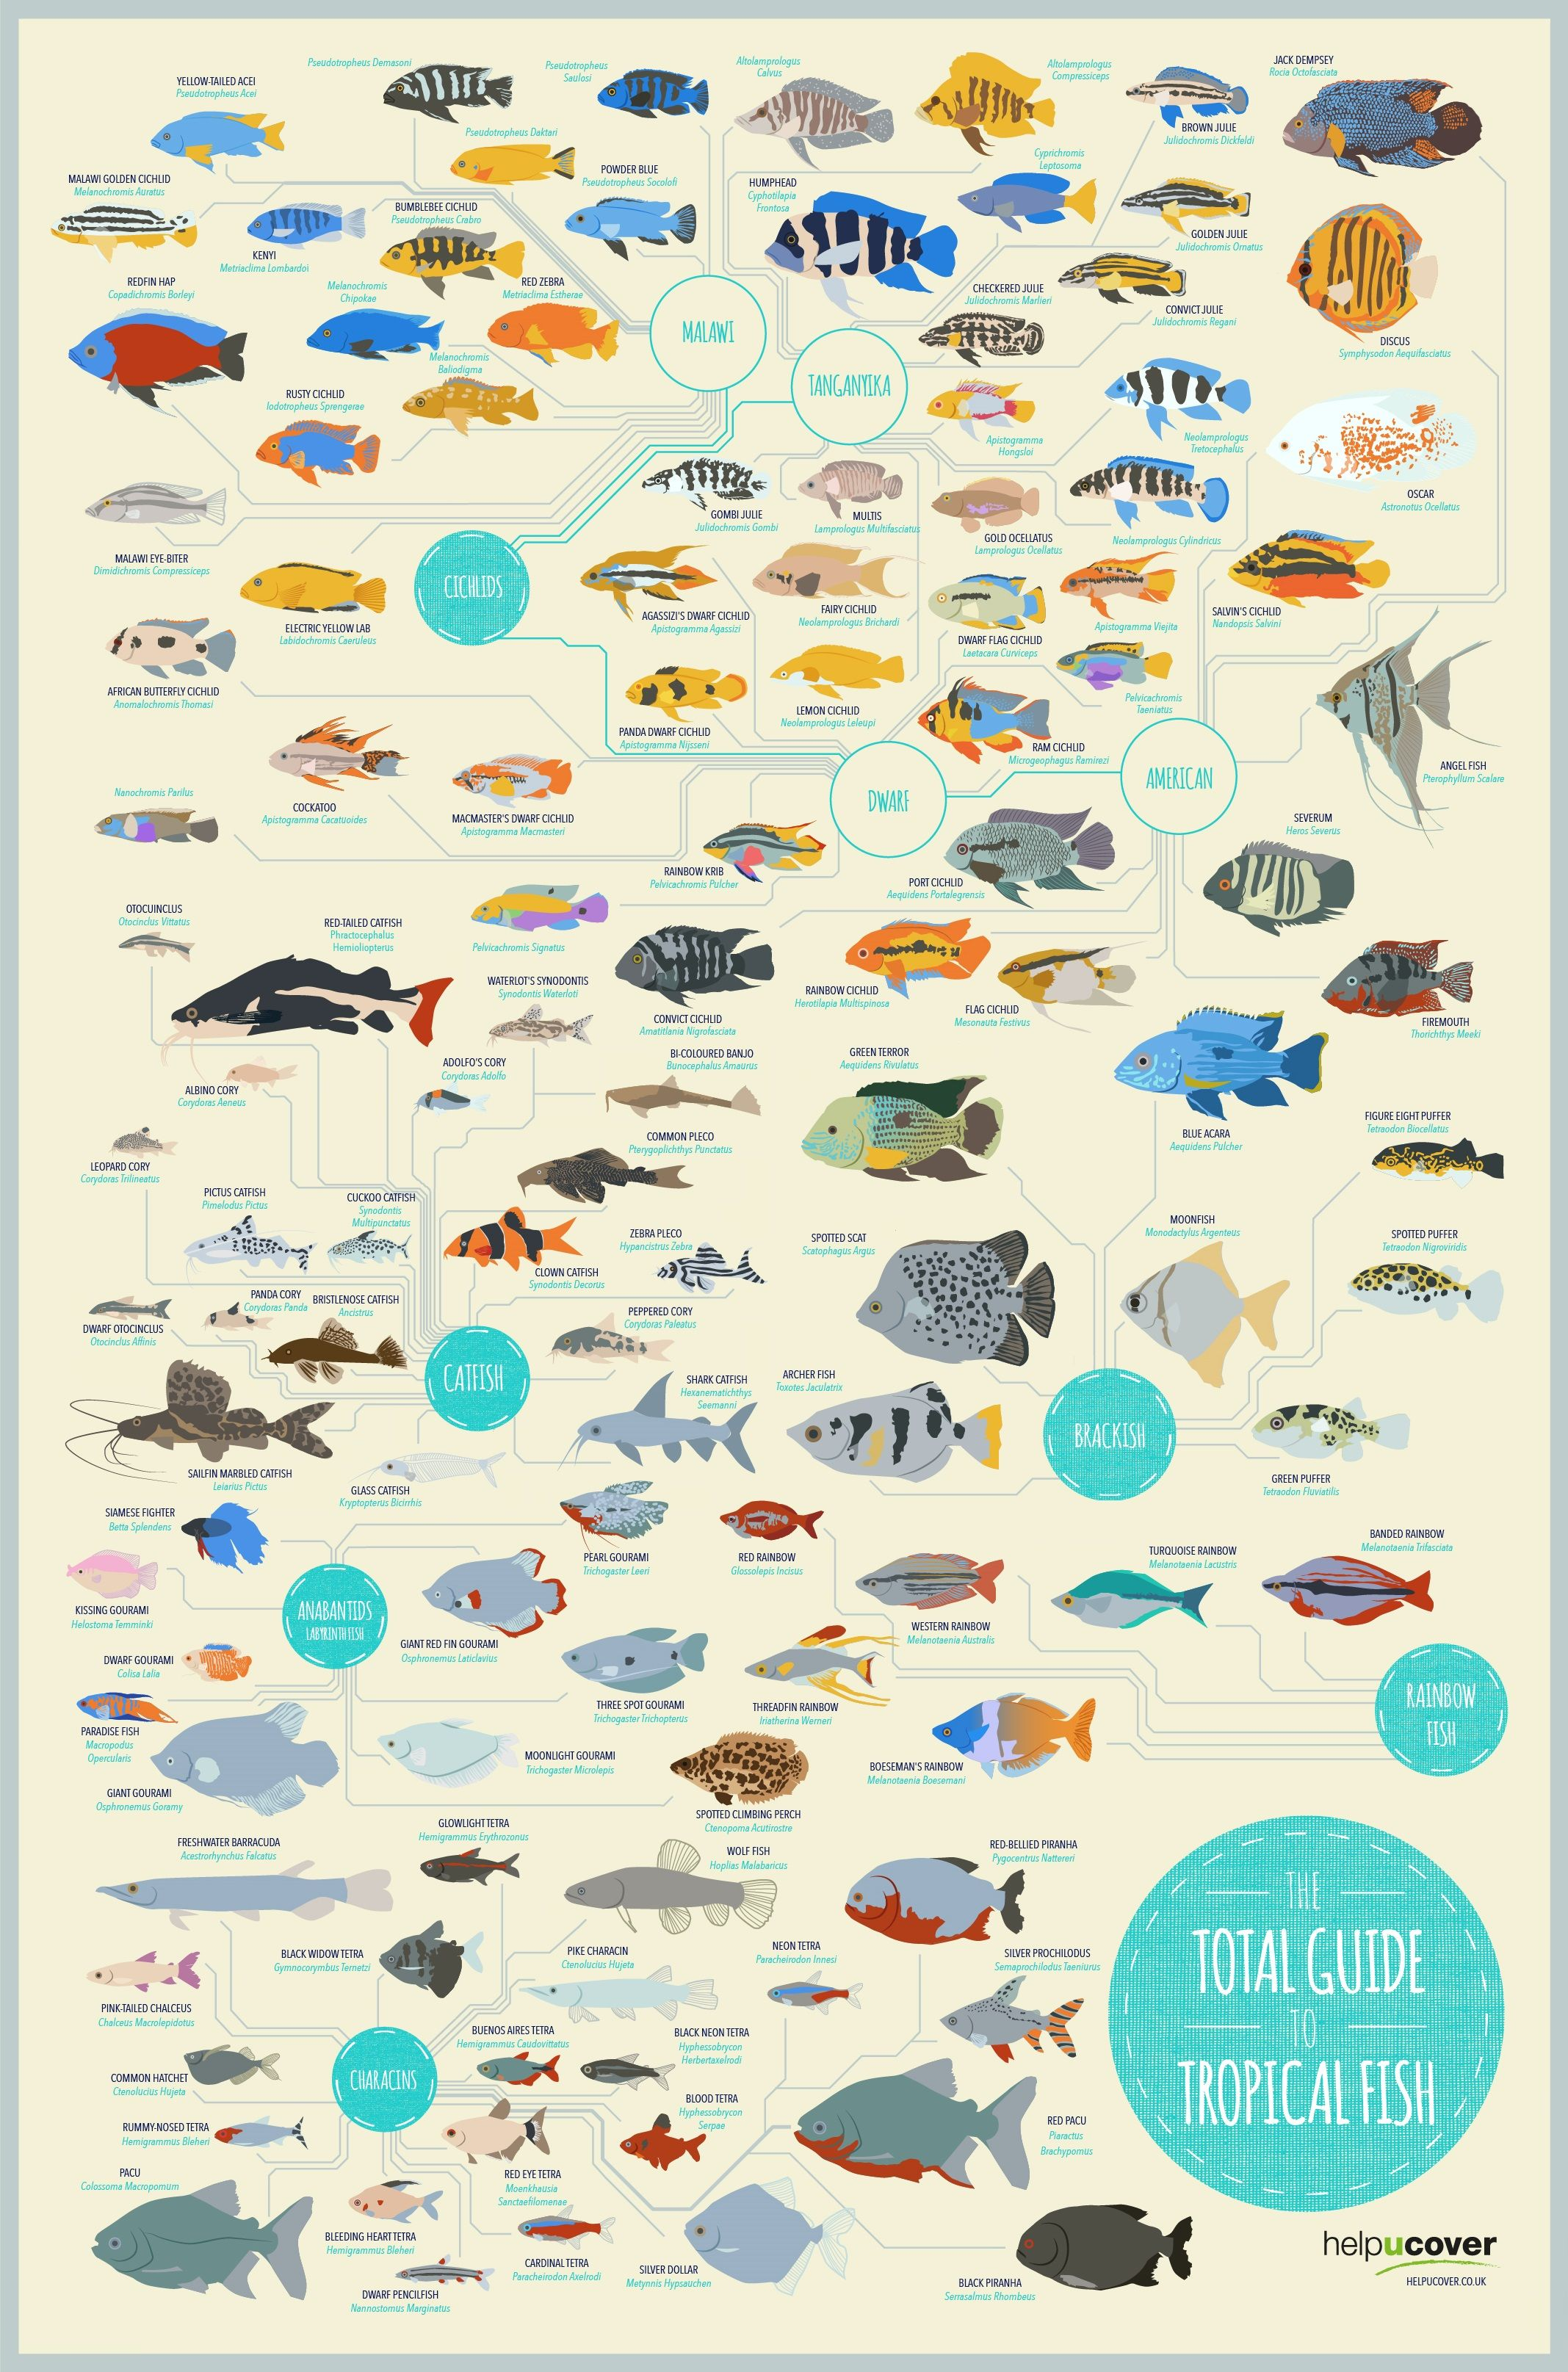 The Total Guide to Tropical Fish #infographic